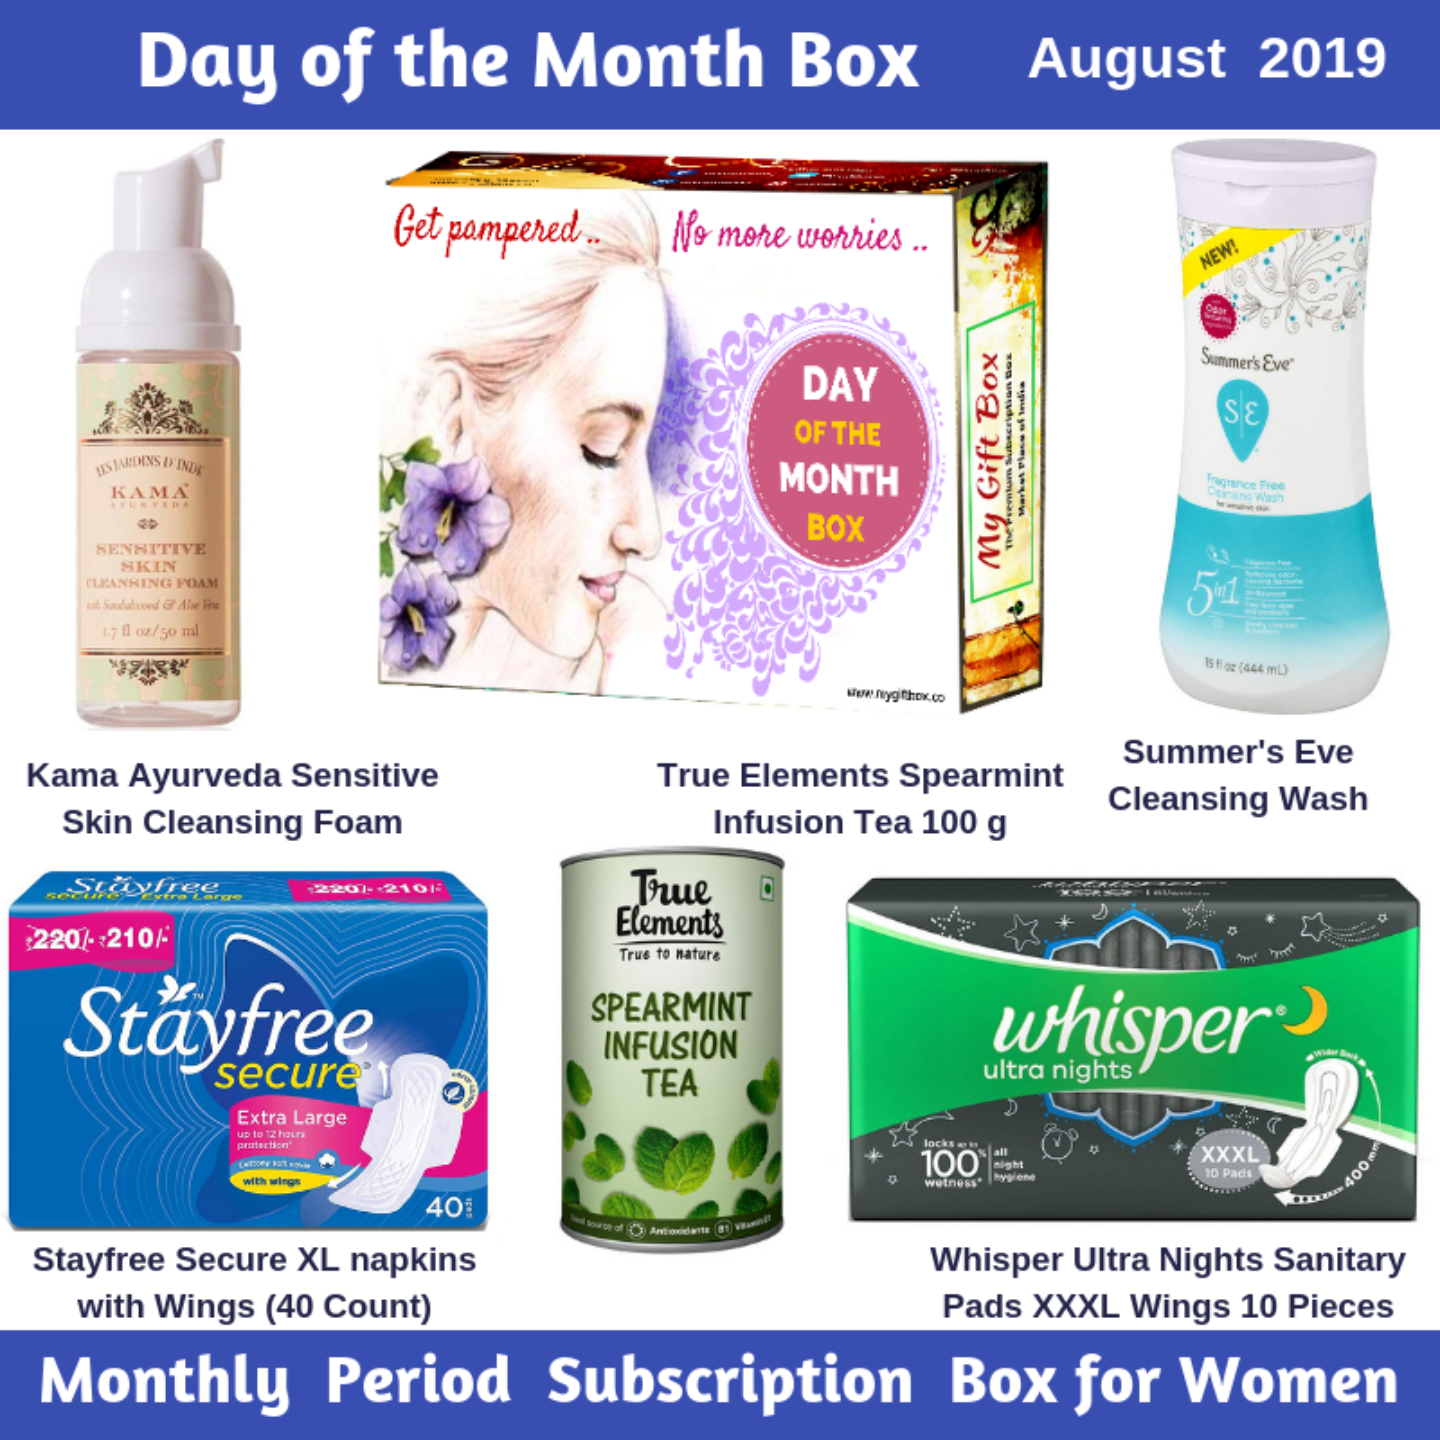 Day of the Month Box